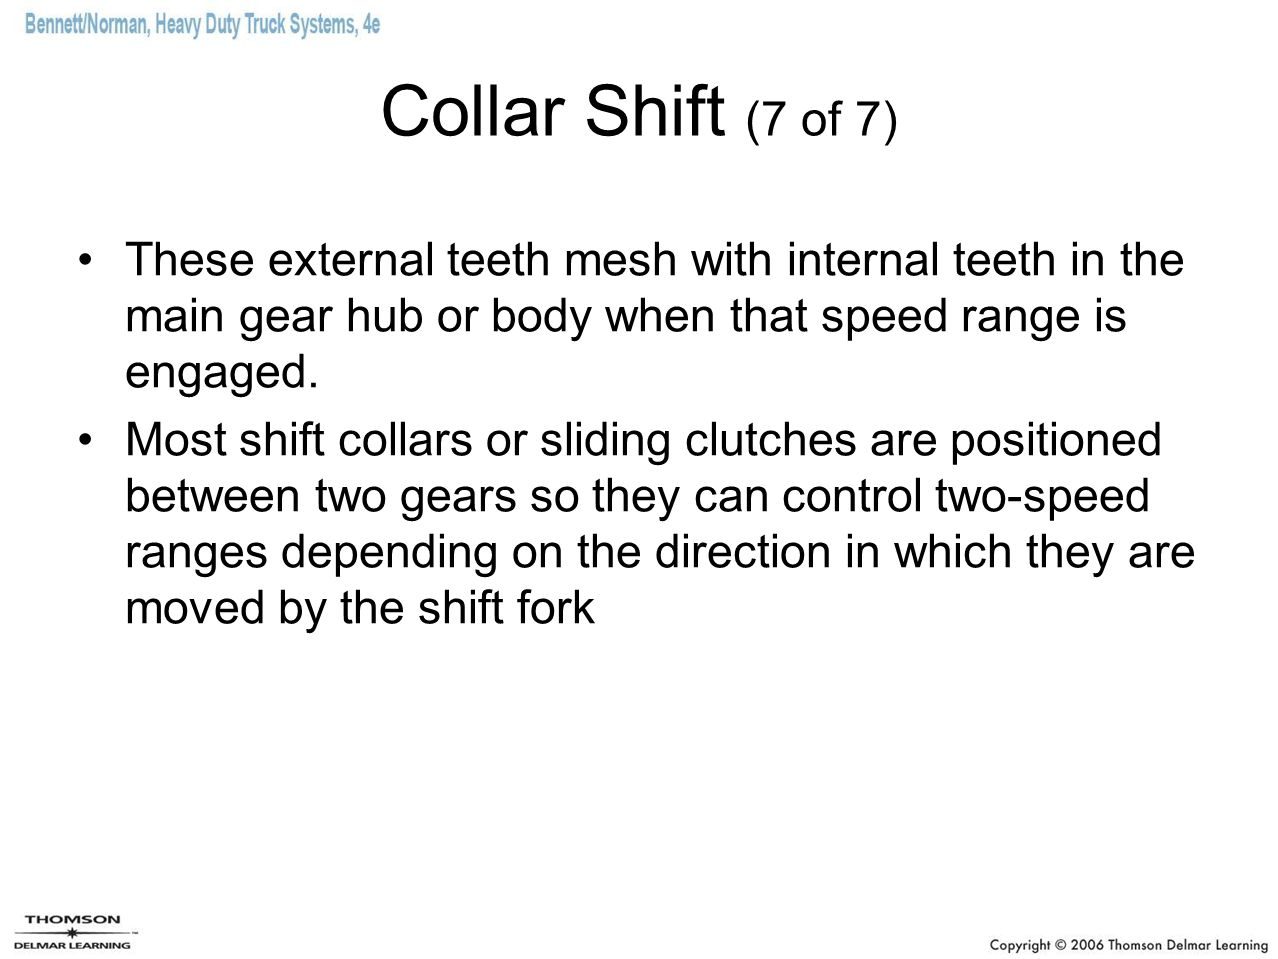 Collar Shift (7 of 7) These external teeth mesh with internal teeth in the main gear hub or body when that speed range is engaged. Most shift collars